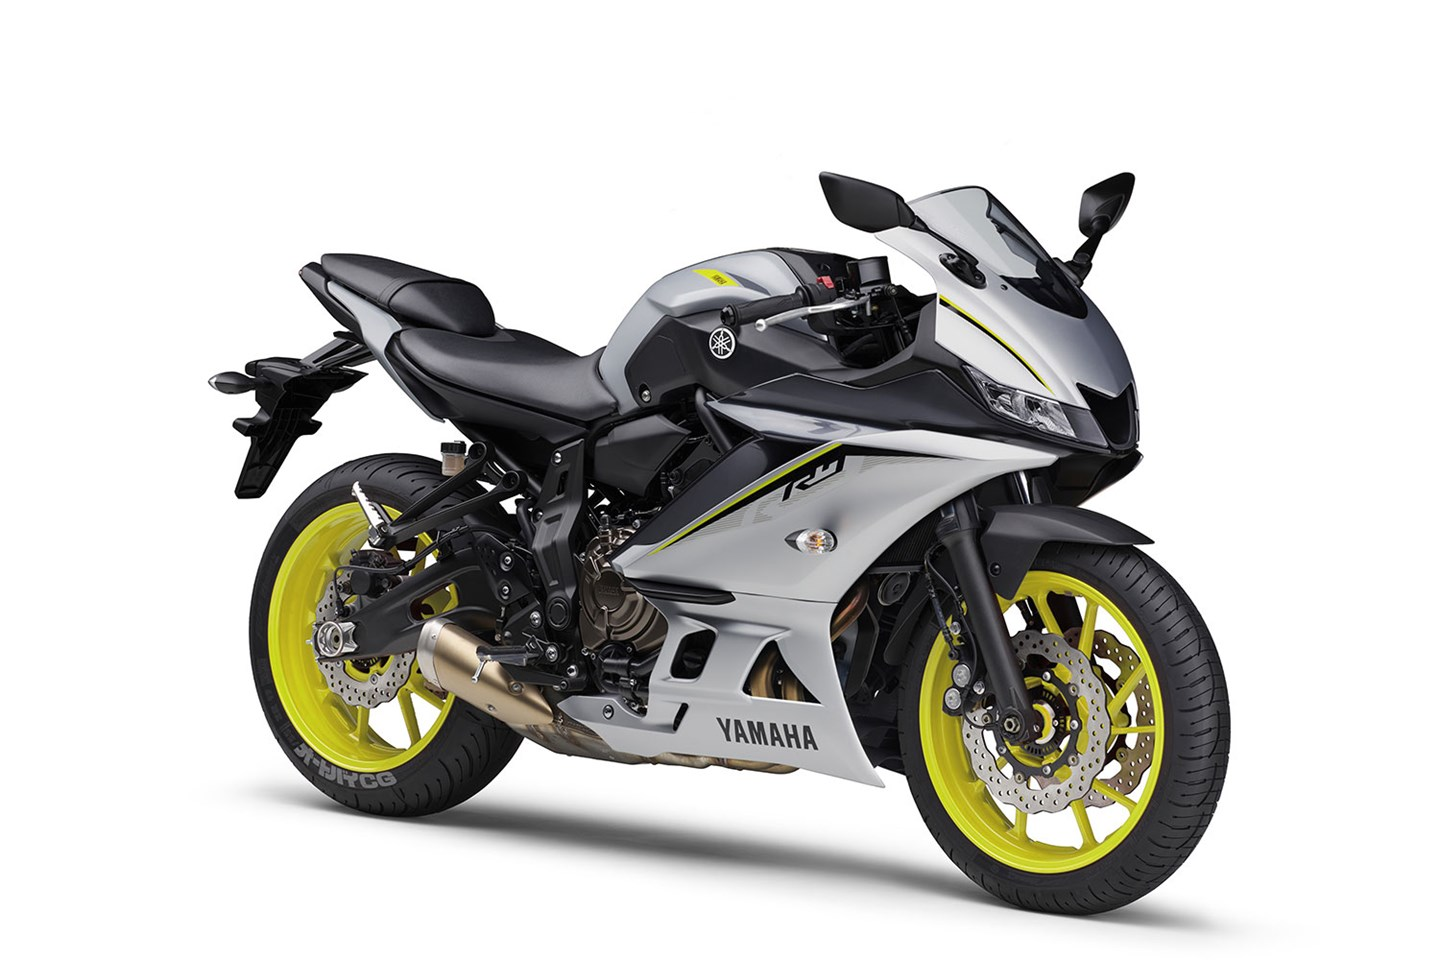 [Rumour] Yamaha MT-07 based YZF-R7 is on the way?